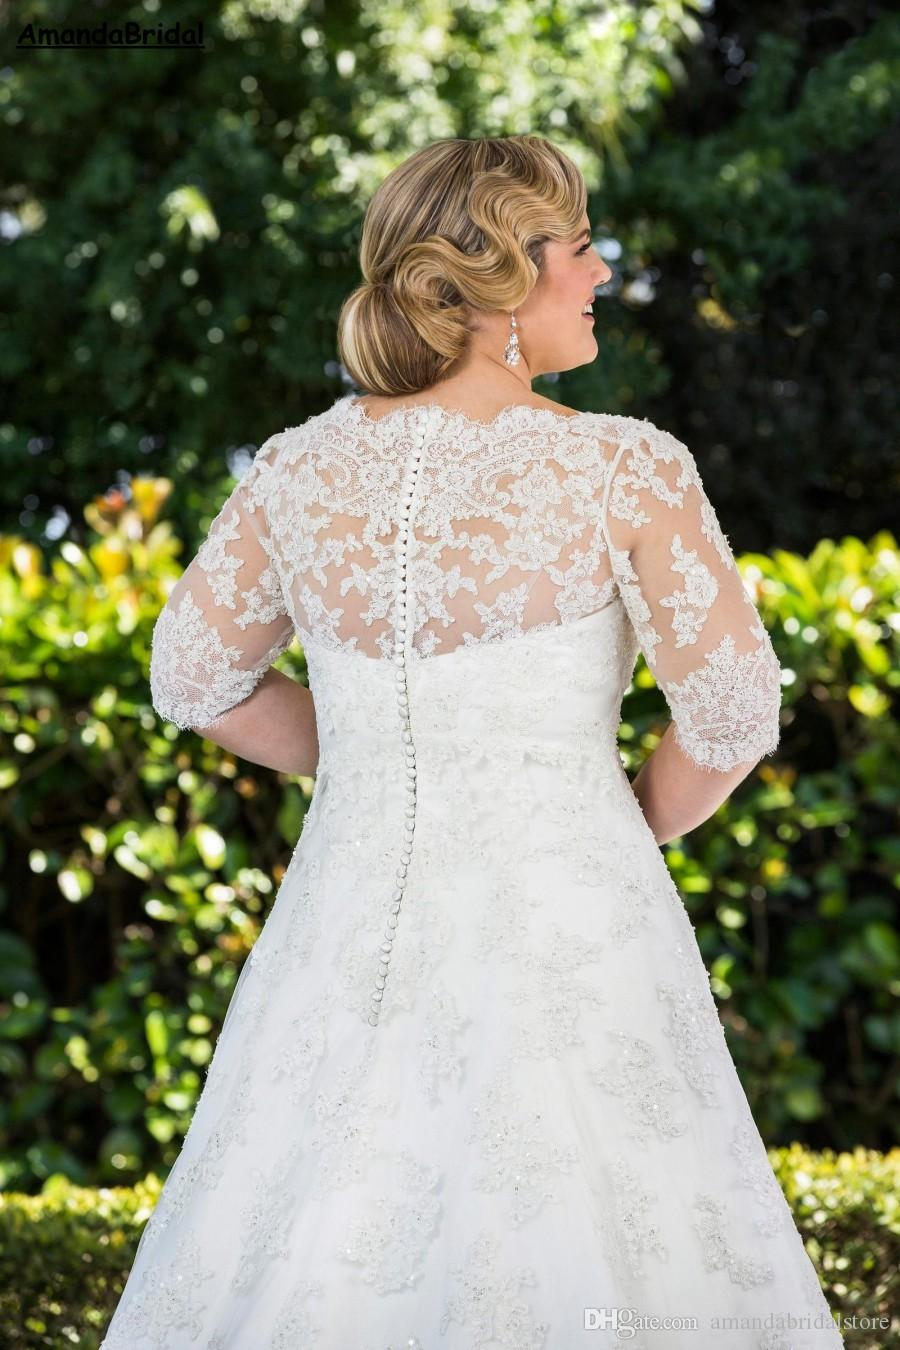 Amandabridal Plus Size A Line Lace Wedding Dresses With Half Sleeves 2021 Long Princess Bridal Gowns Appliques Crystal